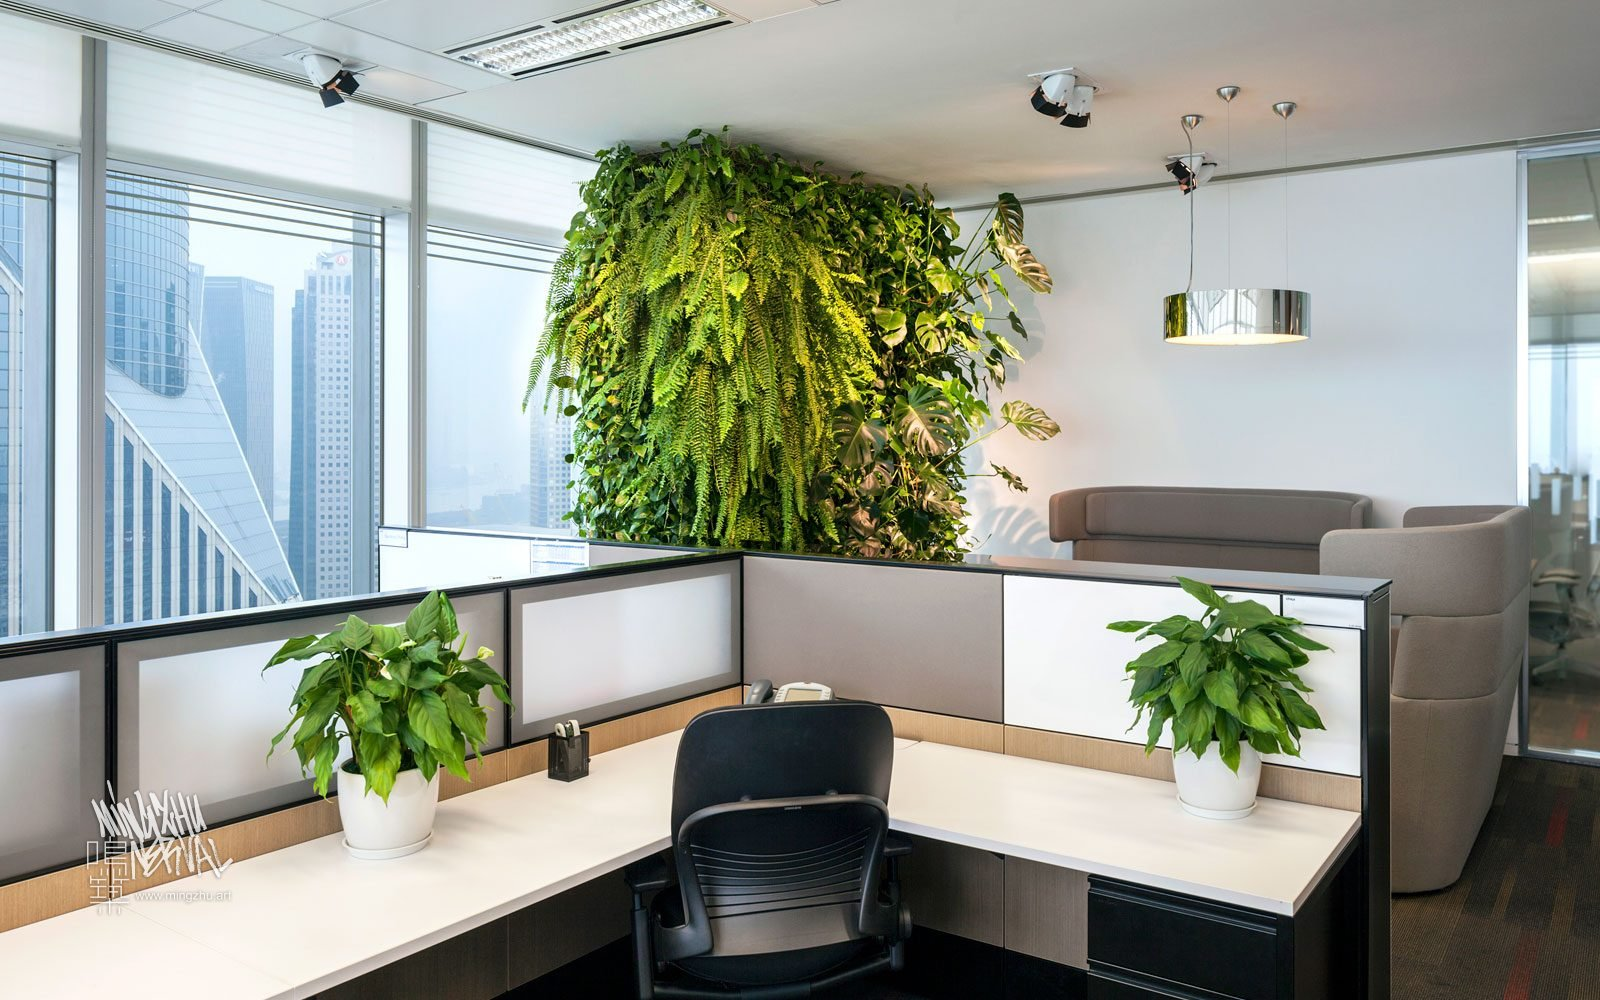 At Mingzhu Nerval, we thrive at creating the most beautiful vertical gardens in the world. For Citrix Systems, we created a healthy nature workspace design - Shanghai, 2011.